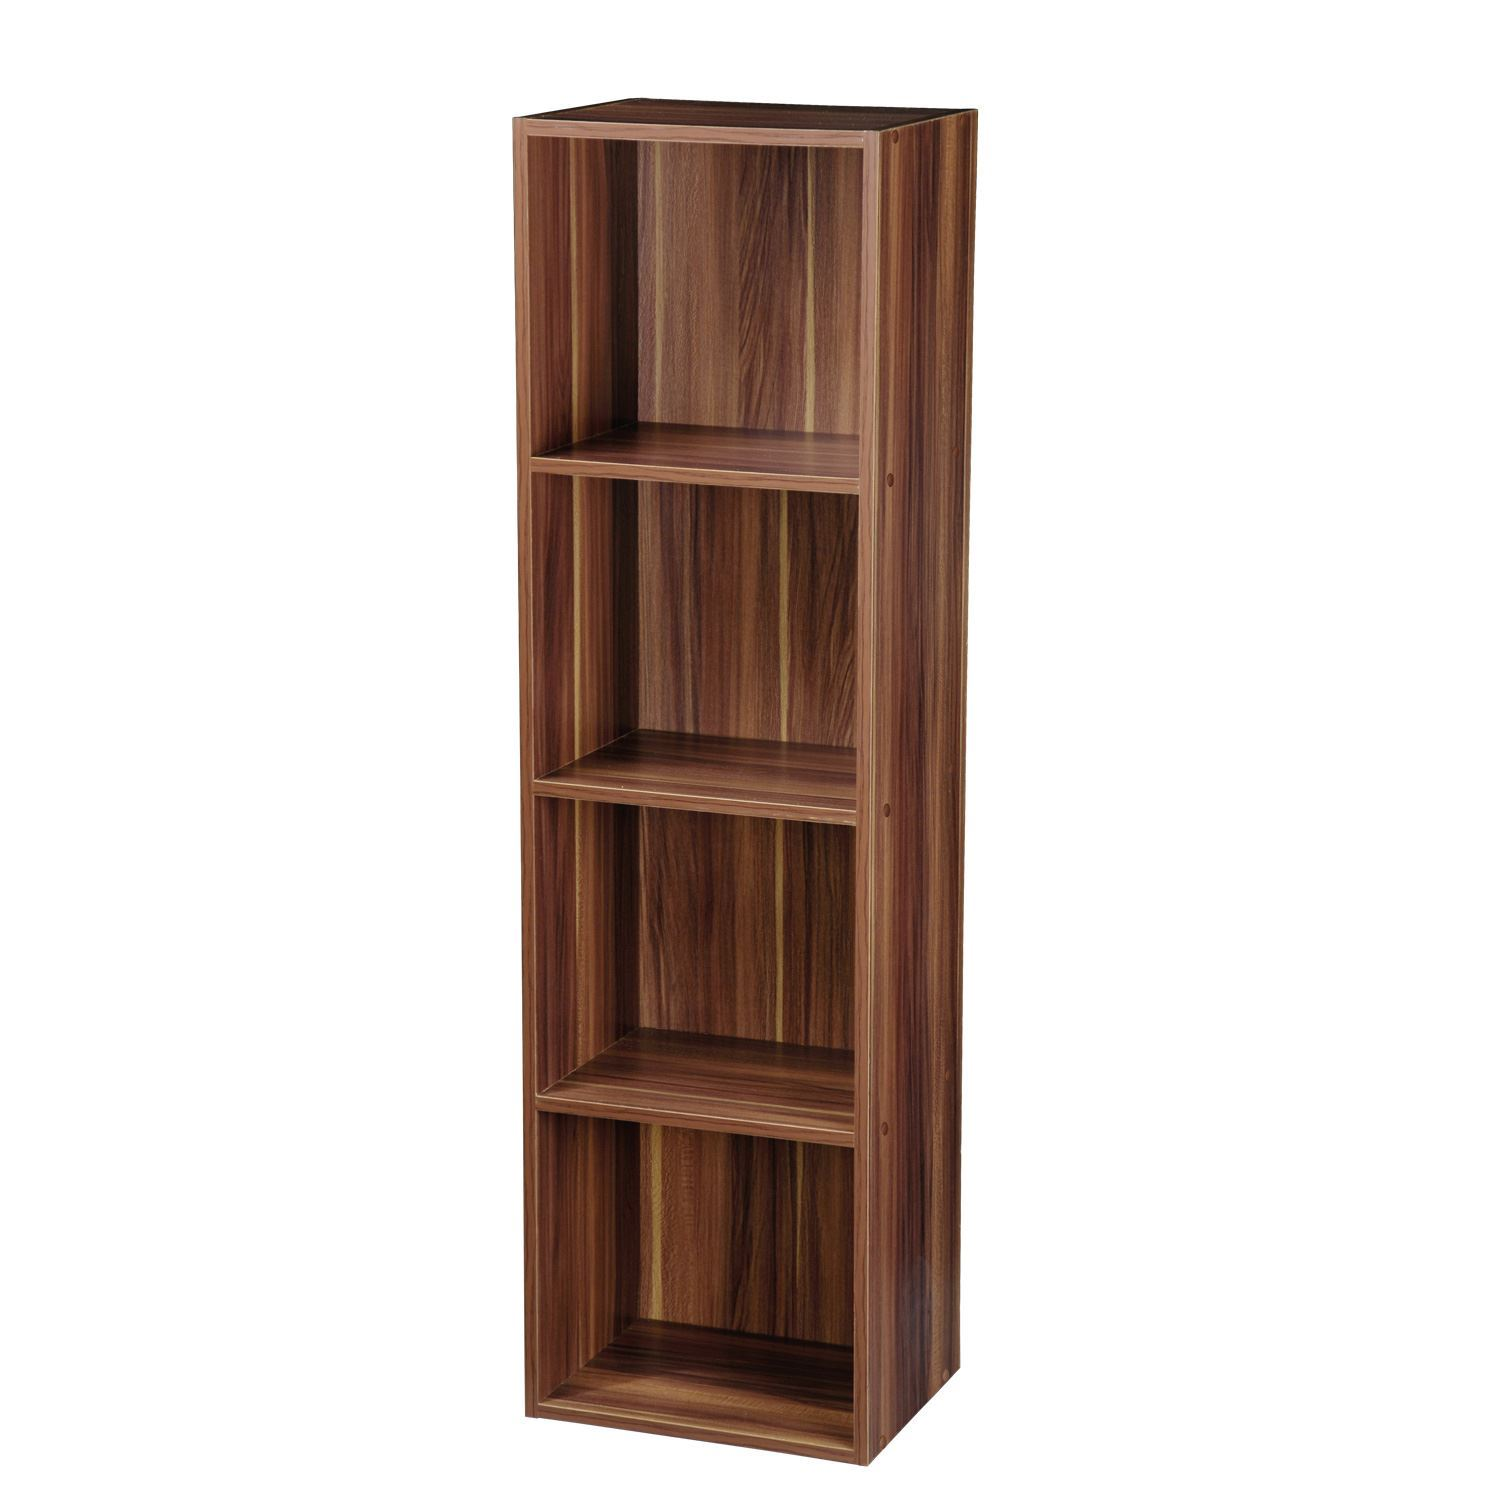 Tier wooden bookcase shelving display storage wood